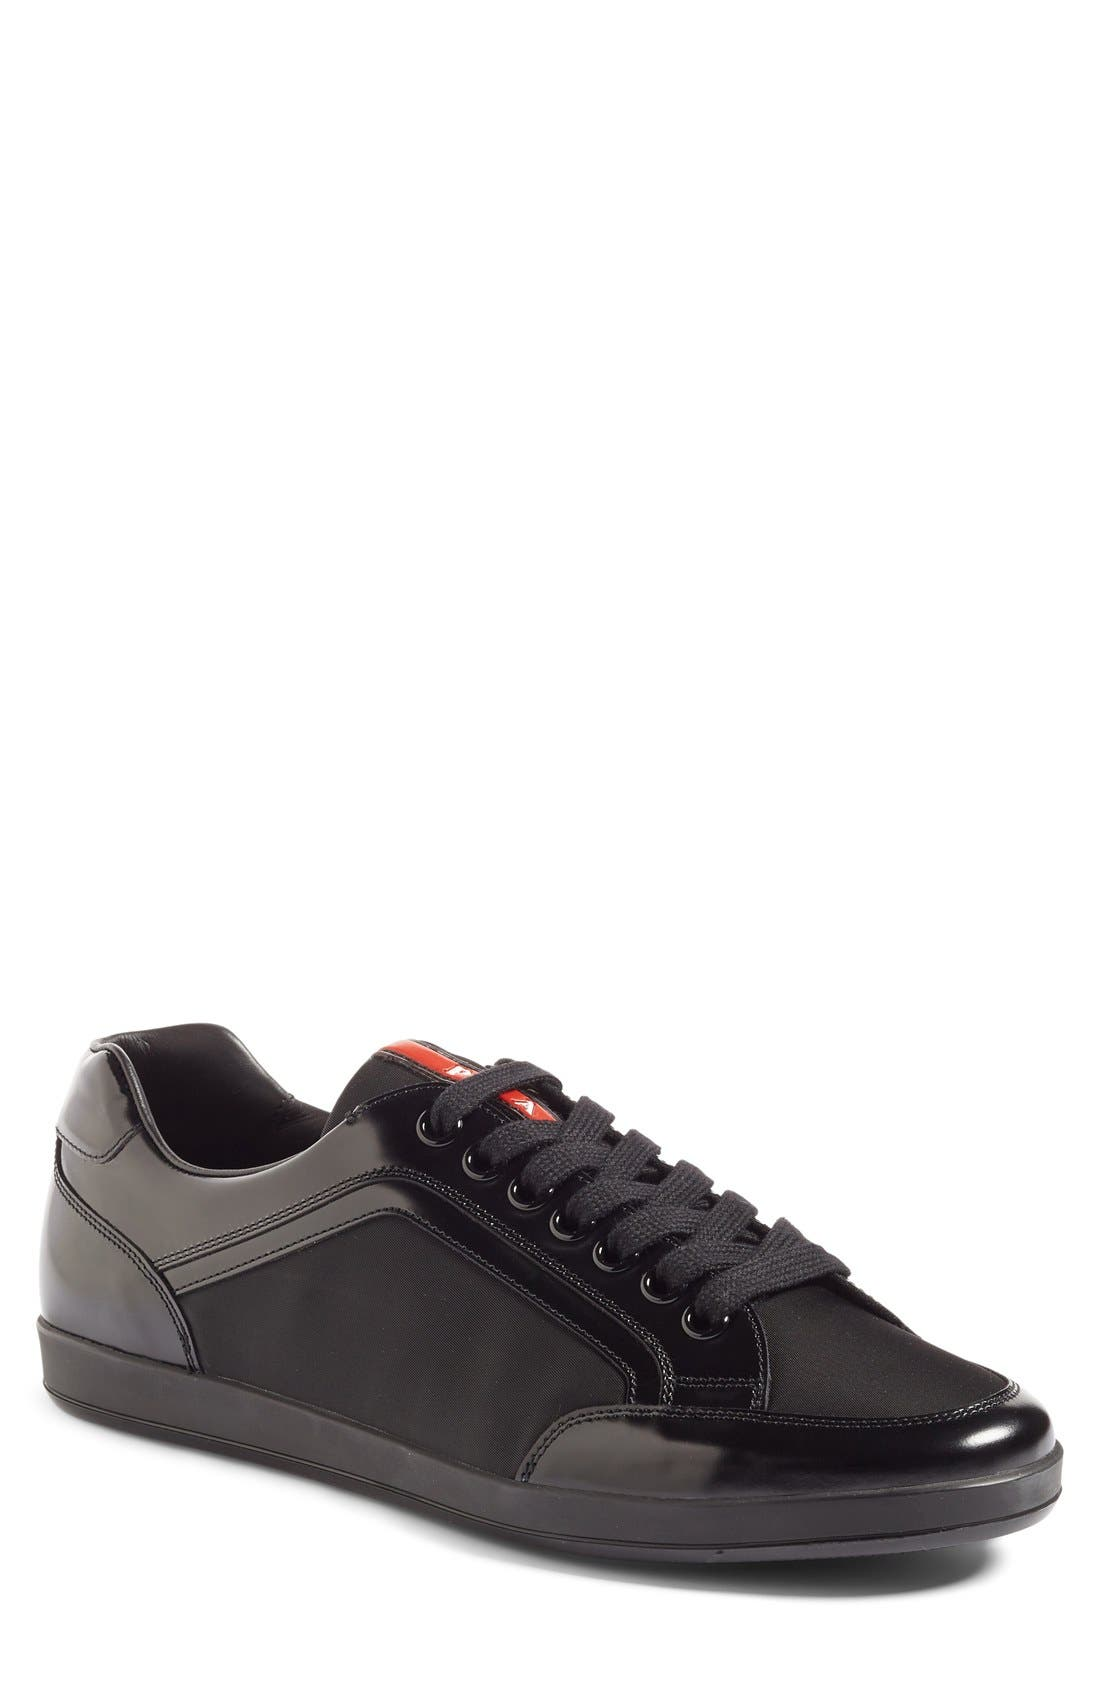 Alternate Image 1 Selected - Prada Linea Rossa Sneaker (Men)